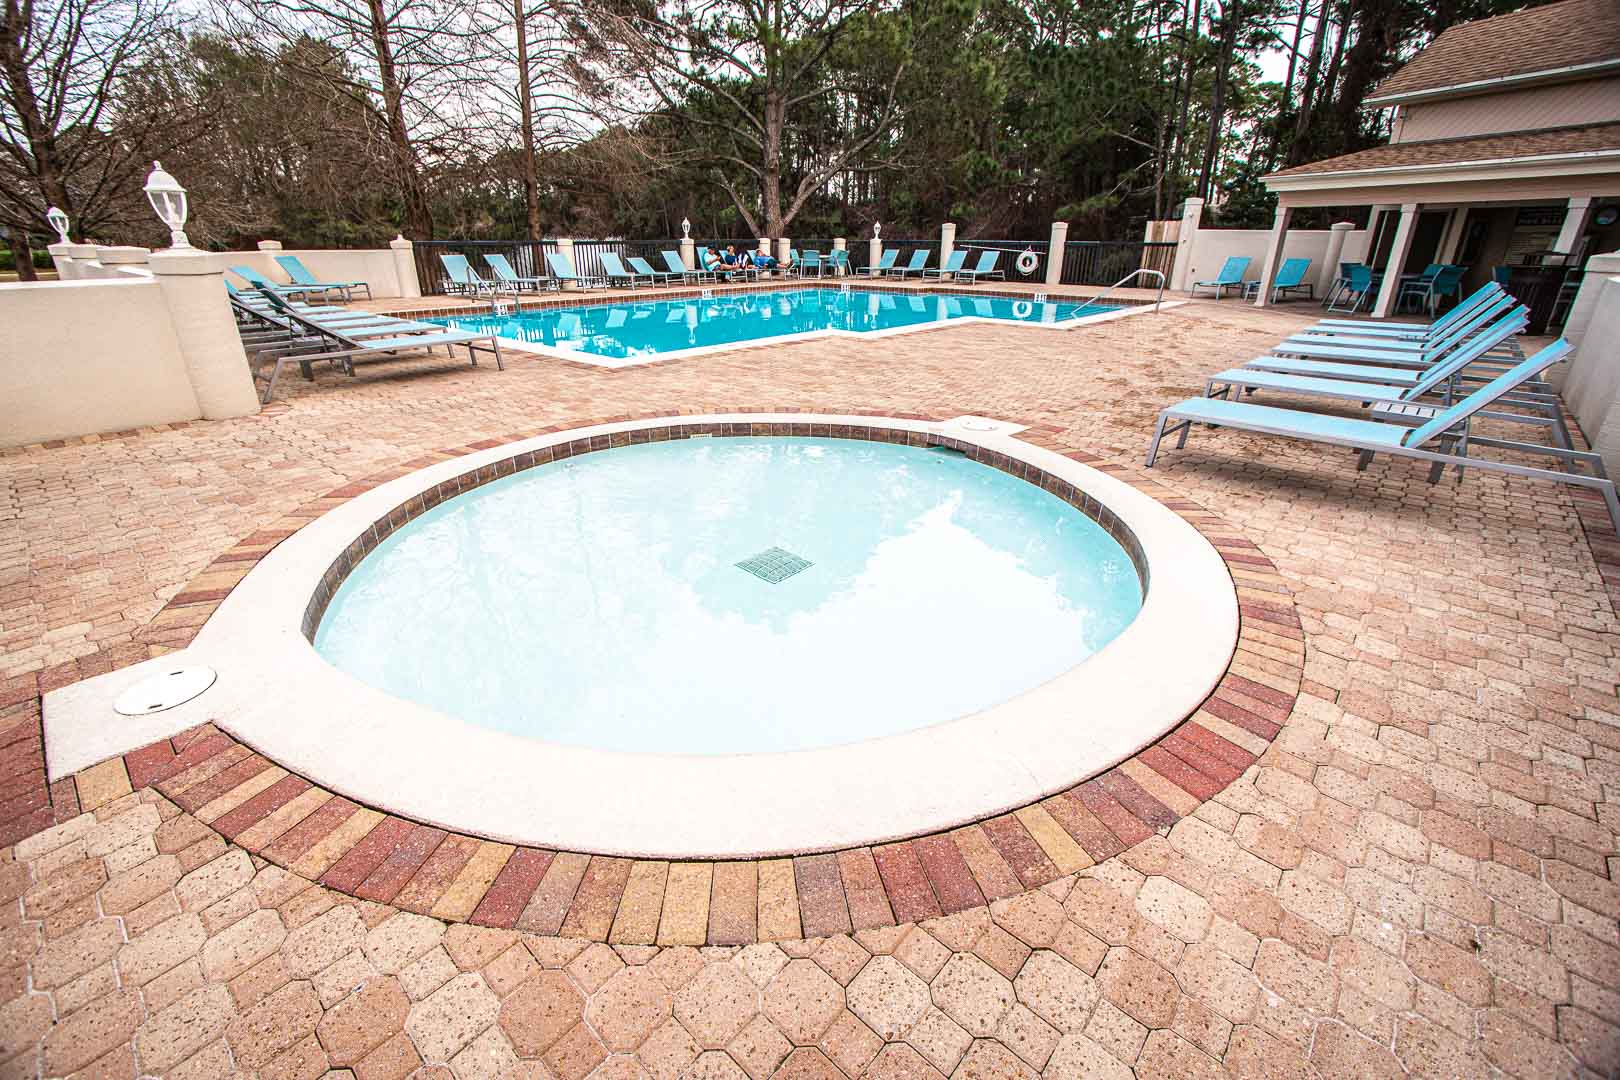 An outdoor swimming pool with a kid pool at VRI's Bay Club of Sandestin in Florida.